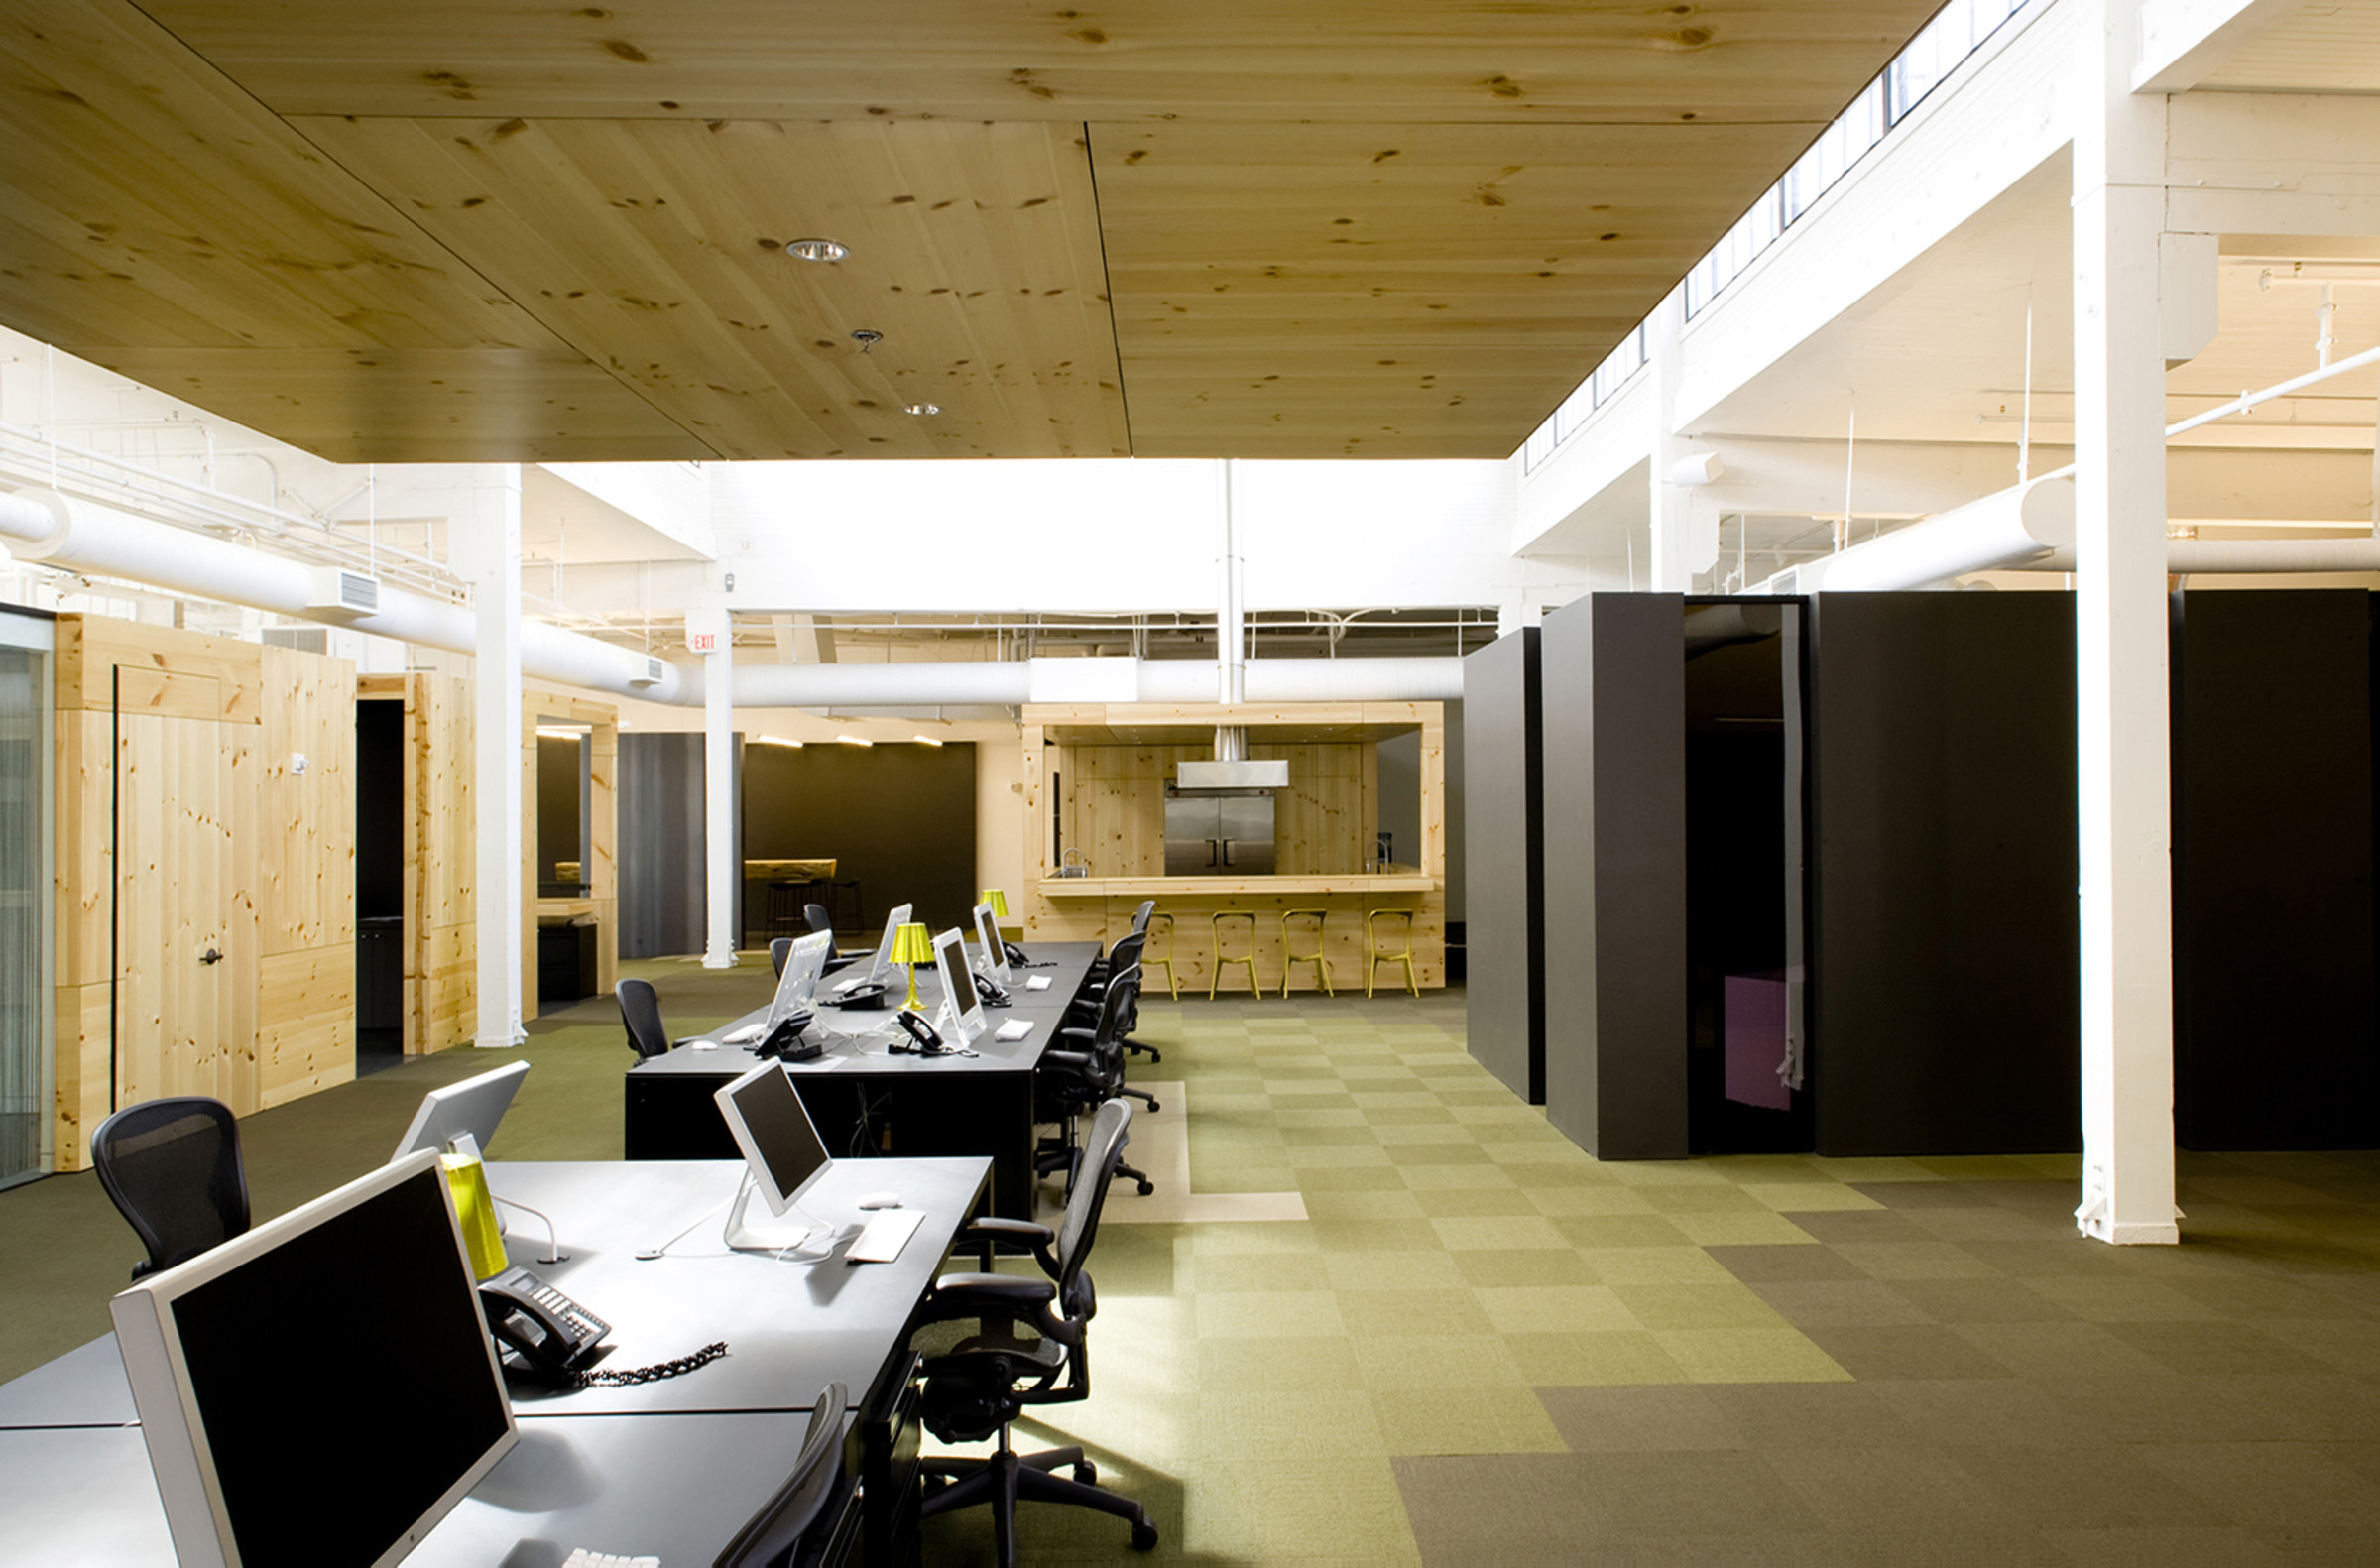 North Office Interior By Skylab Architect